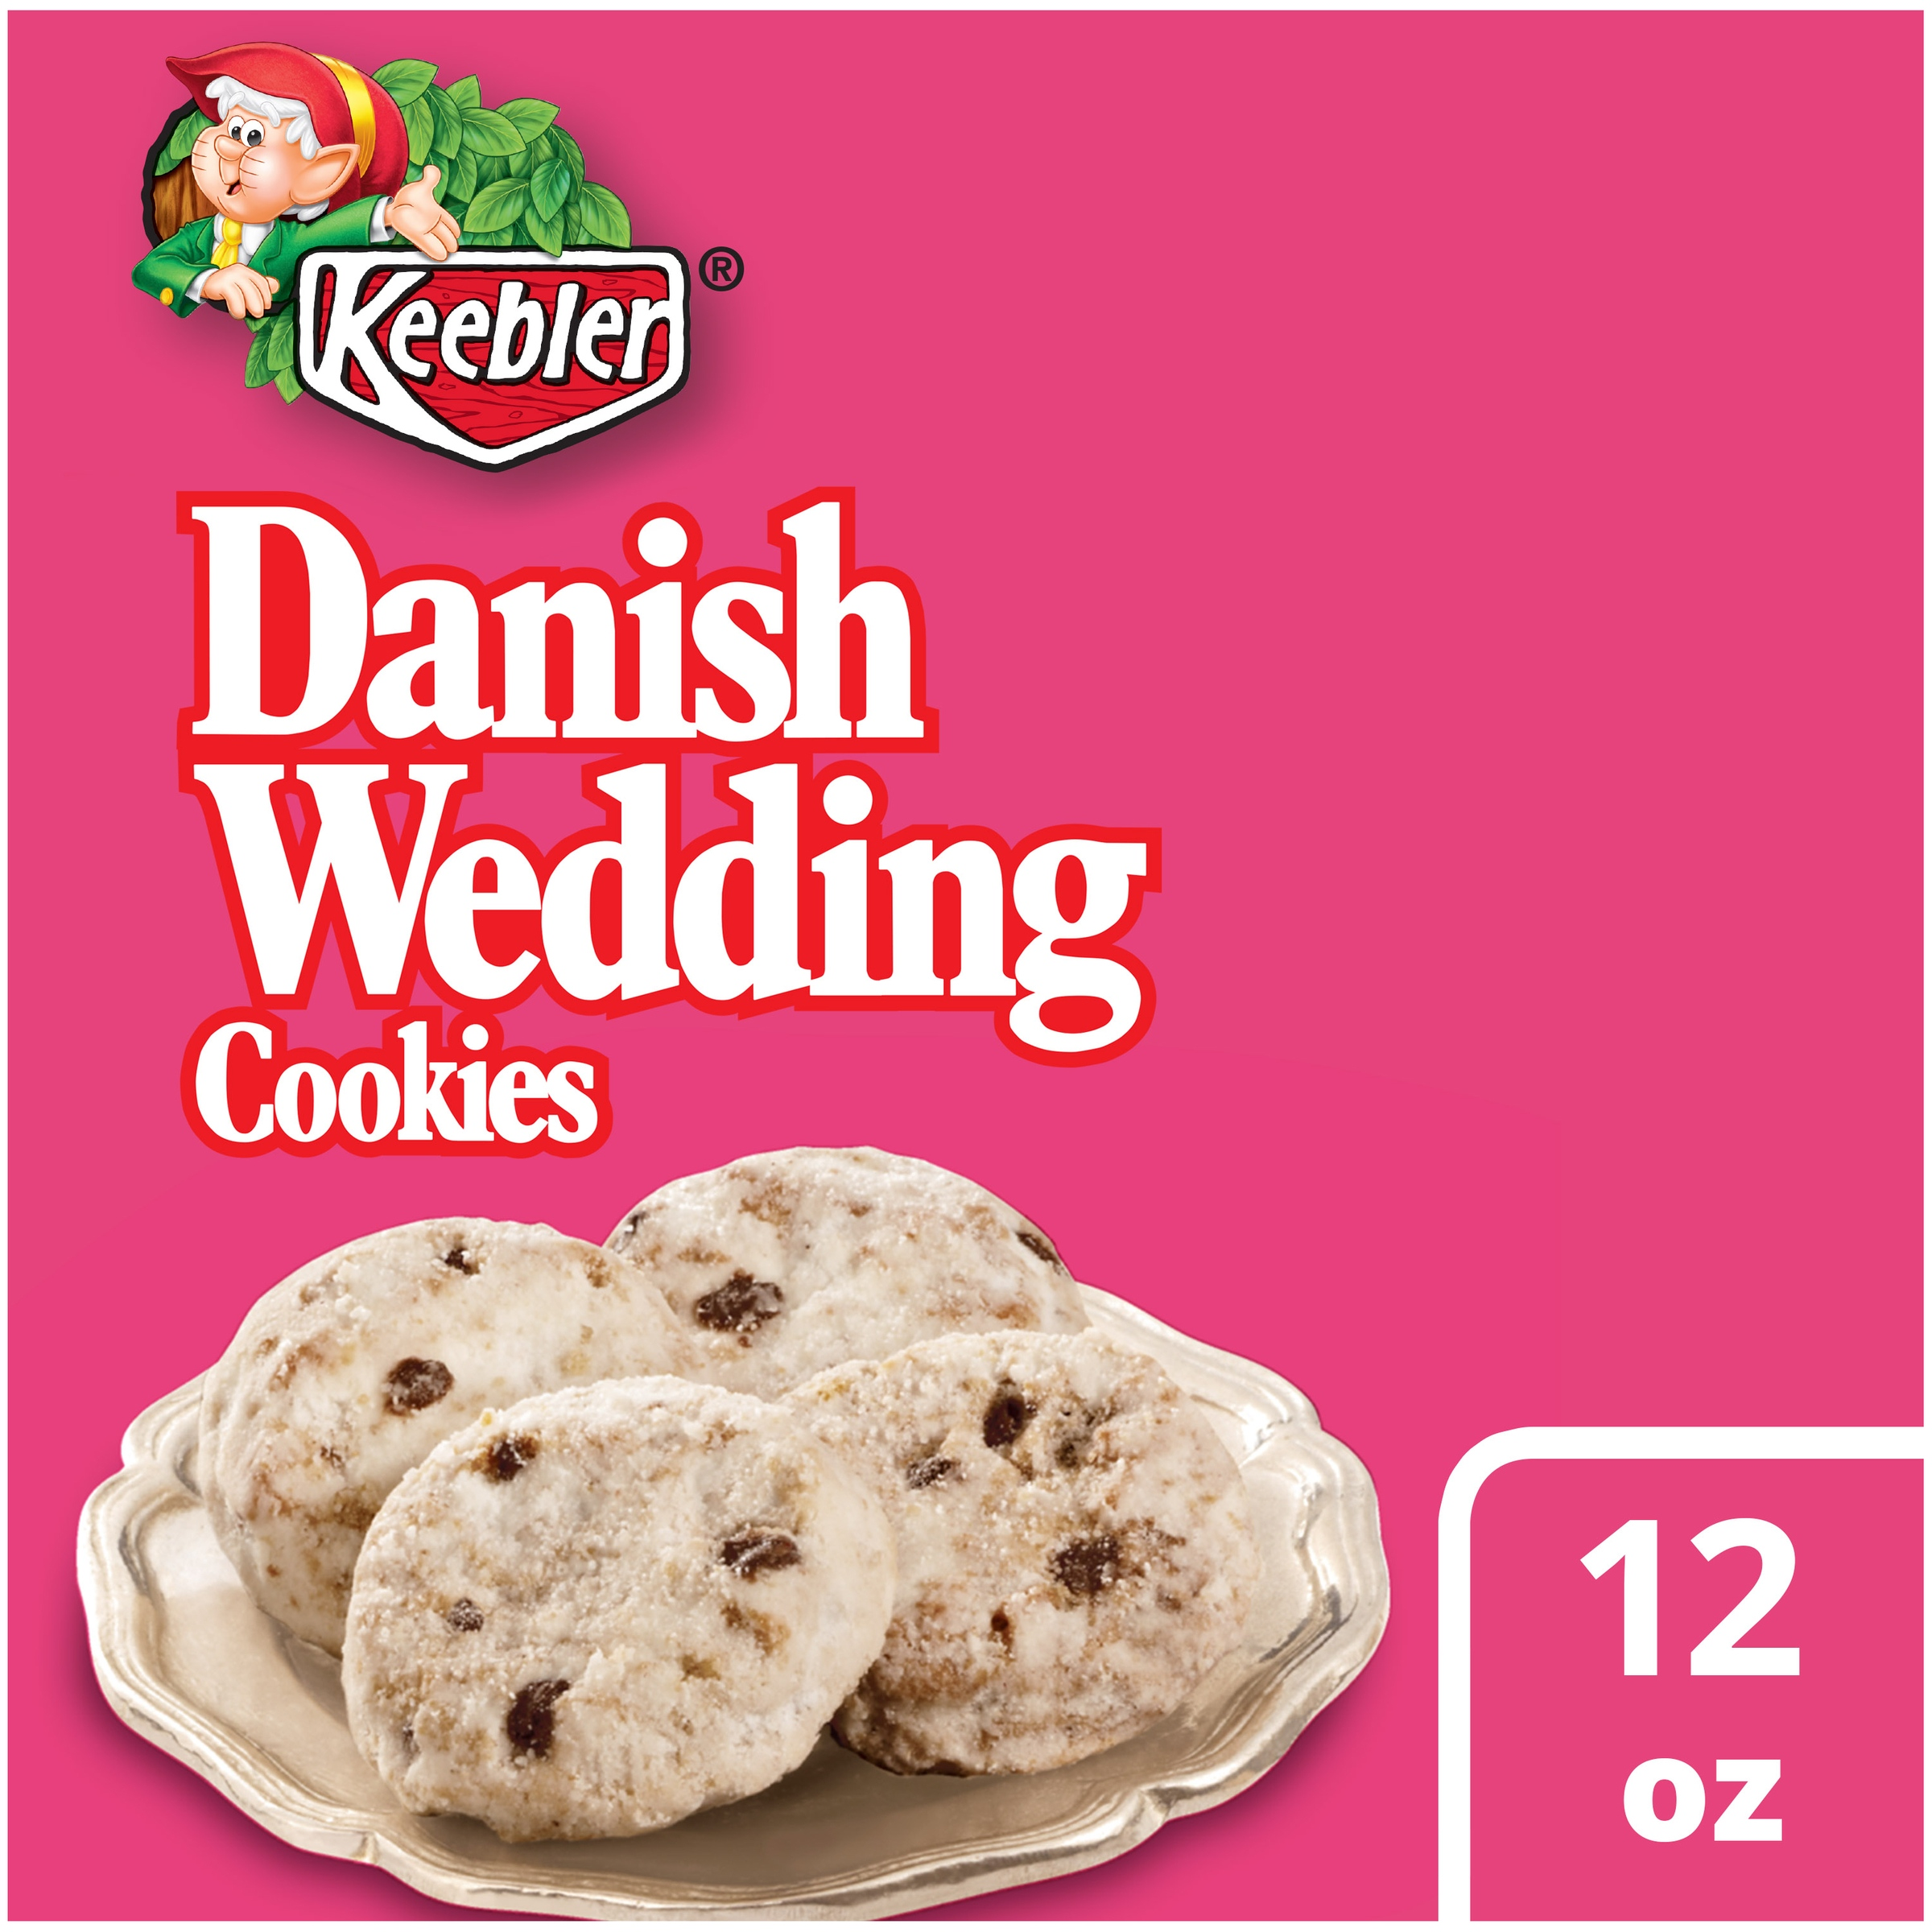 Keebler Danish Wedding Cookies, 12 oz - Walmart.com